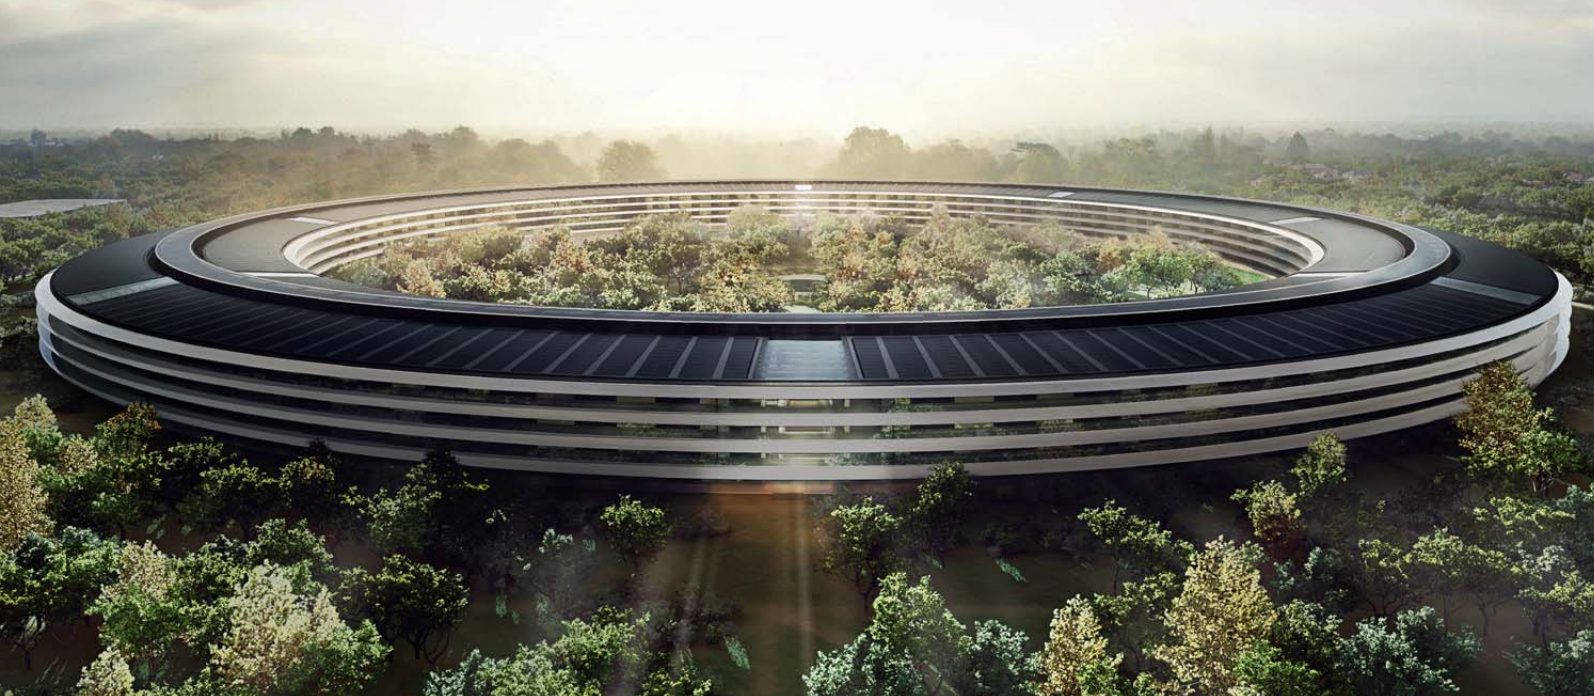 Spaceships, Castles and Steve Jobs' Abandoned Mansion: the Houses That Tech Built